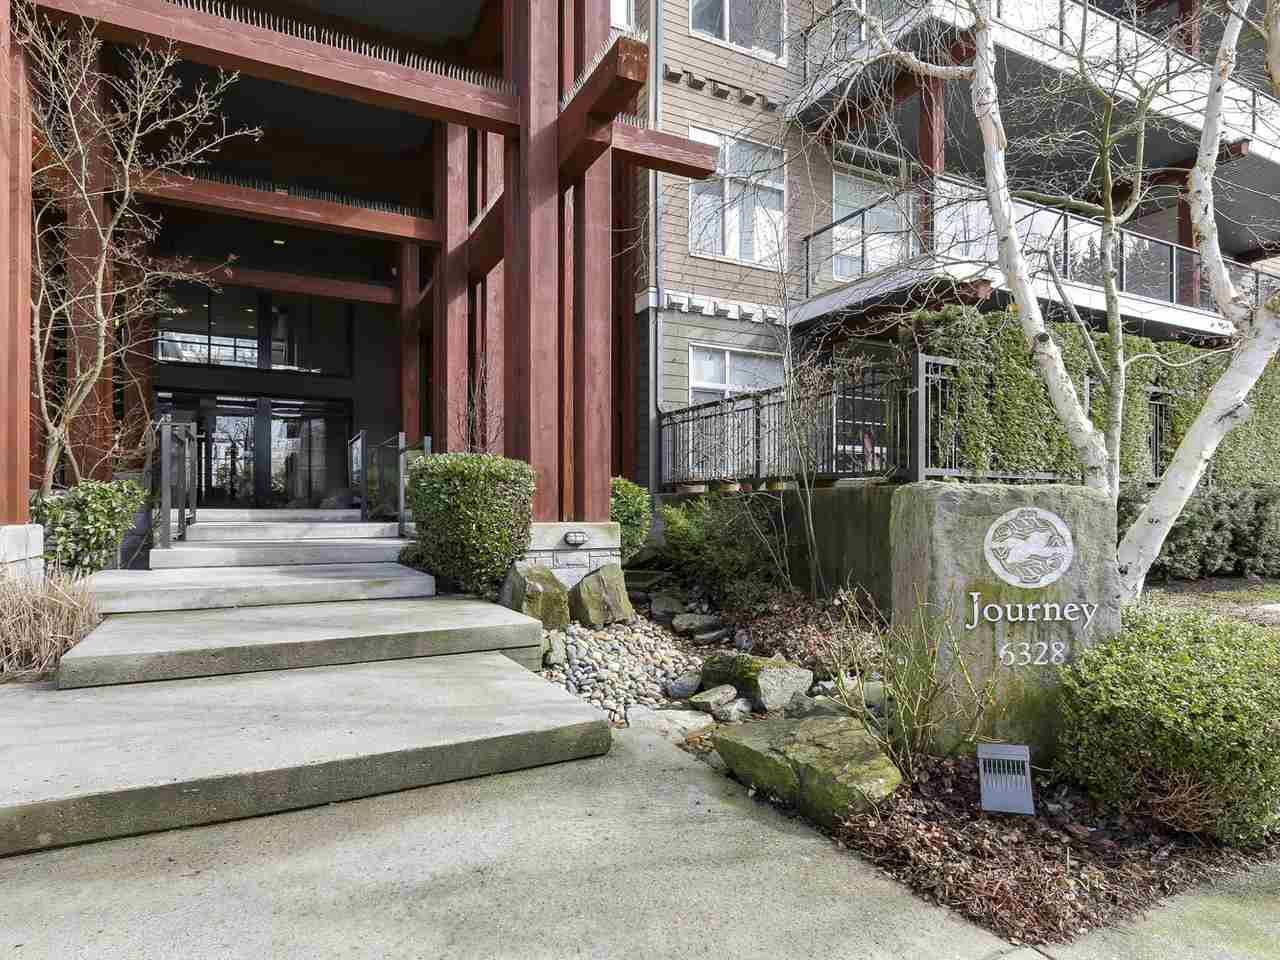 """Photo 2: Photos: 404 6328 LARKIN Drive in Vancouver: University VW Condo for sale in """"Journey"""" (Vancouver West)  : MLS®# R2146632"""